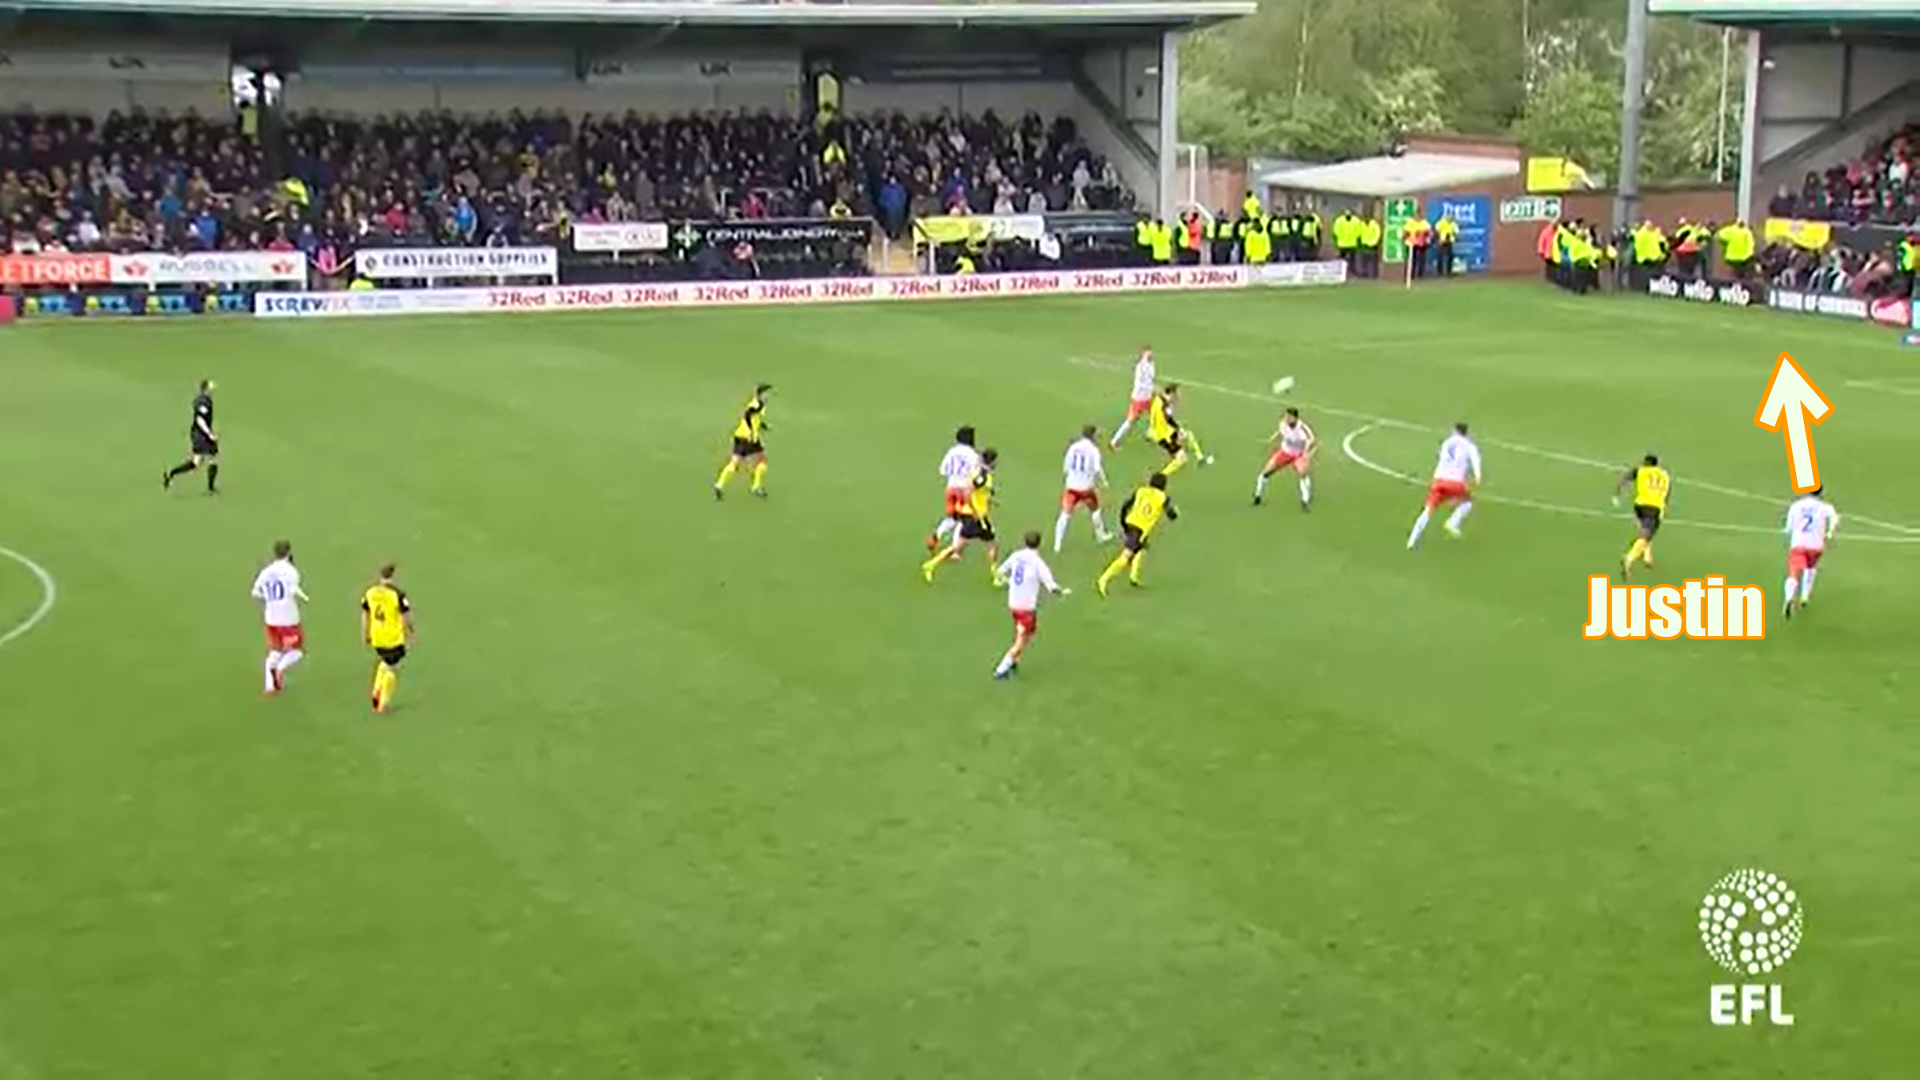 League One 2018/19 Player Analysis: James Justin